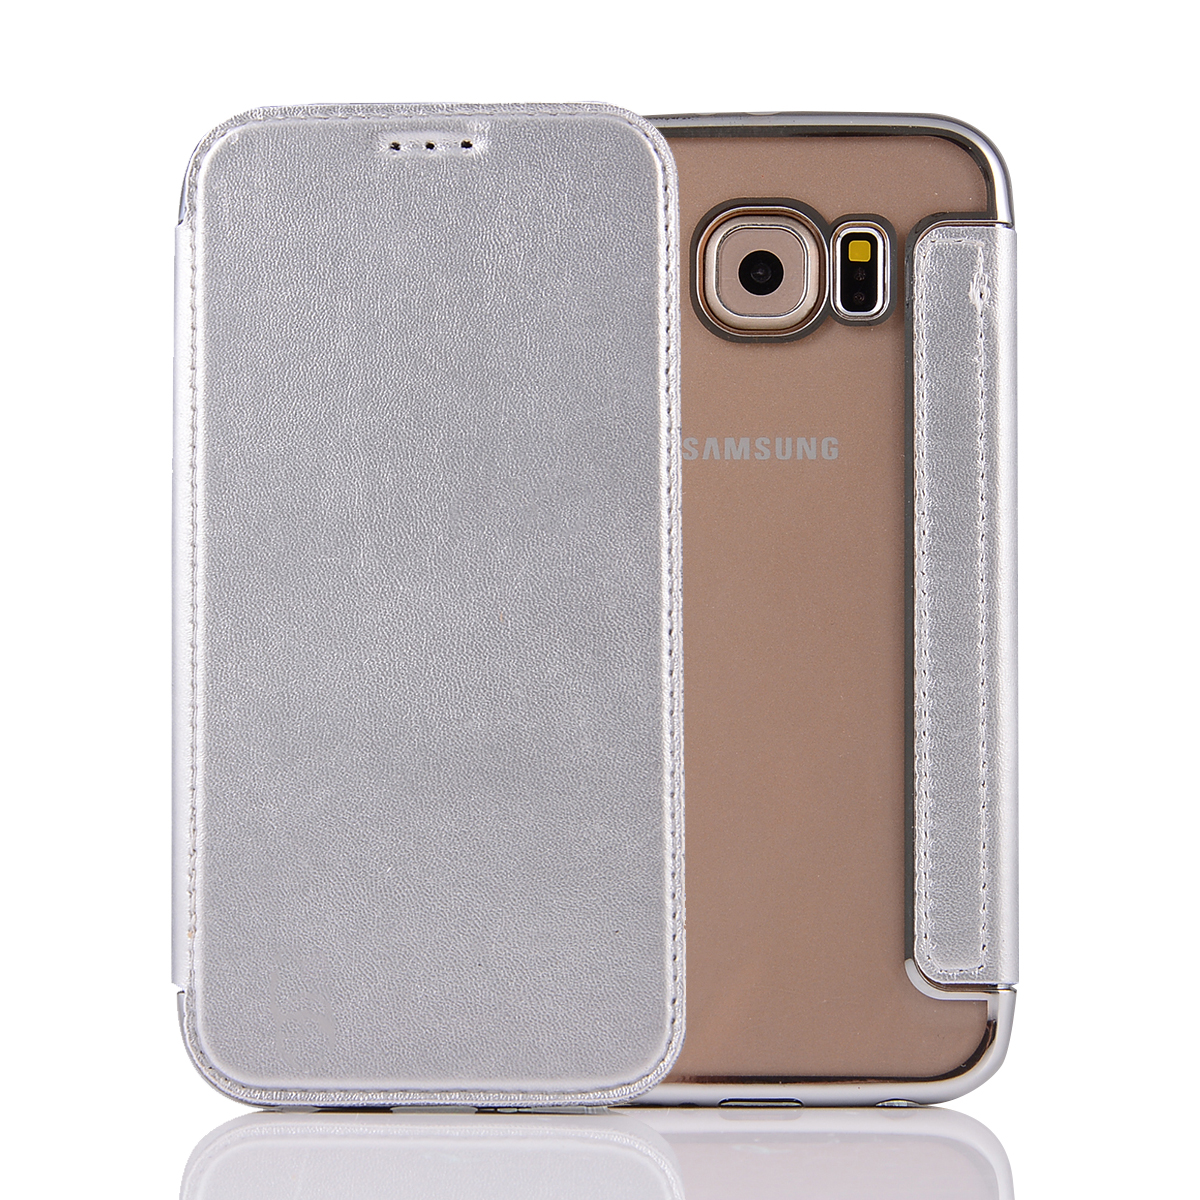 Case For Samsung Galaxy S 6 Wallet Case For Samsung S6 2015 SM-G9200 G9208/SS G9209 G920FD G920K/L/I/S/R7/F/A/T TPU Cases cover  t samsung galaxy s6 case | Which Samsung Galaxy S6 Cases Work With Wireless Charging?  font b Case b font For font b Samsung b font font b Galaxy b